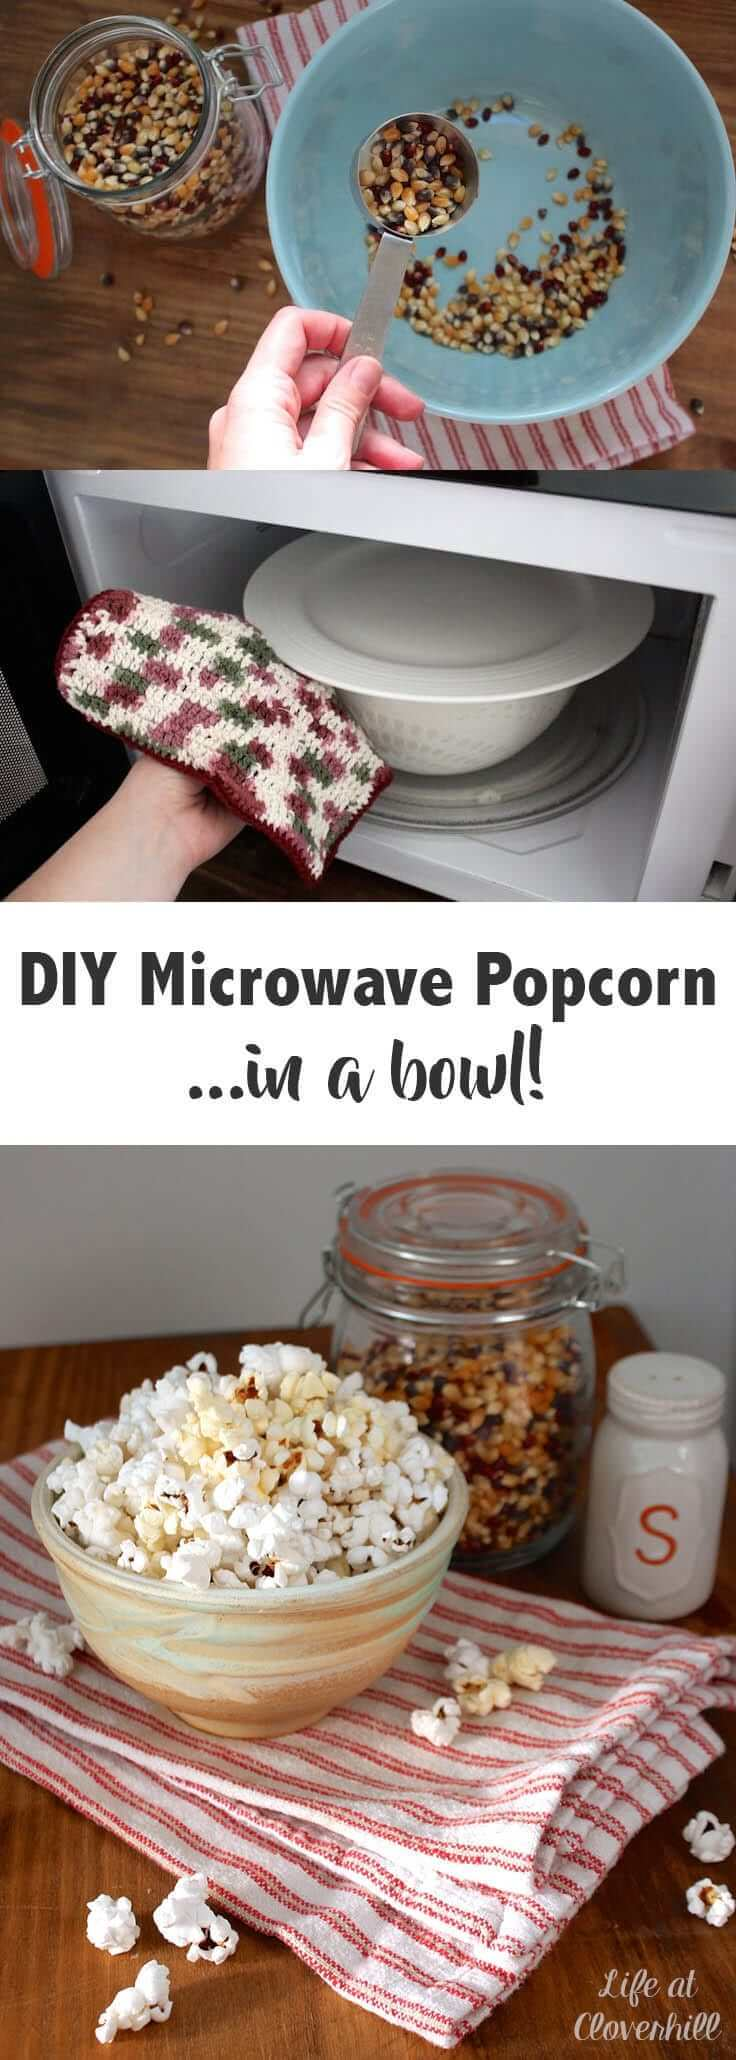 DIY Microwave Popcorn in a bowl is an easy, healthy and inexpensive alternative to microwave popcorn. Pop it in a bowl, add salt and butter, or get creative with your toppings!